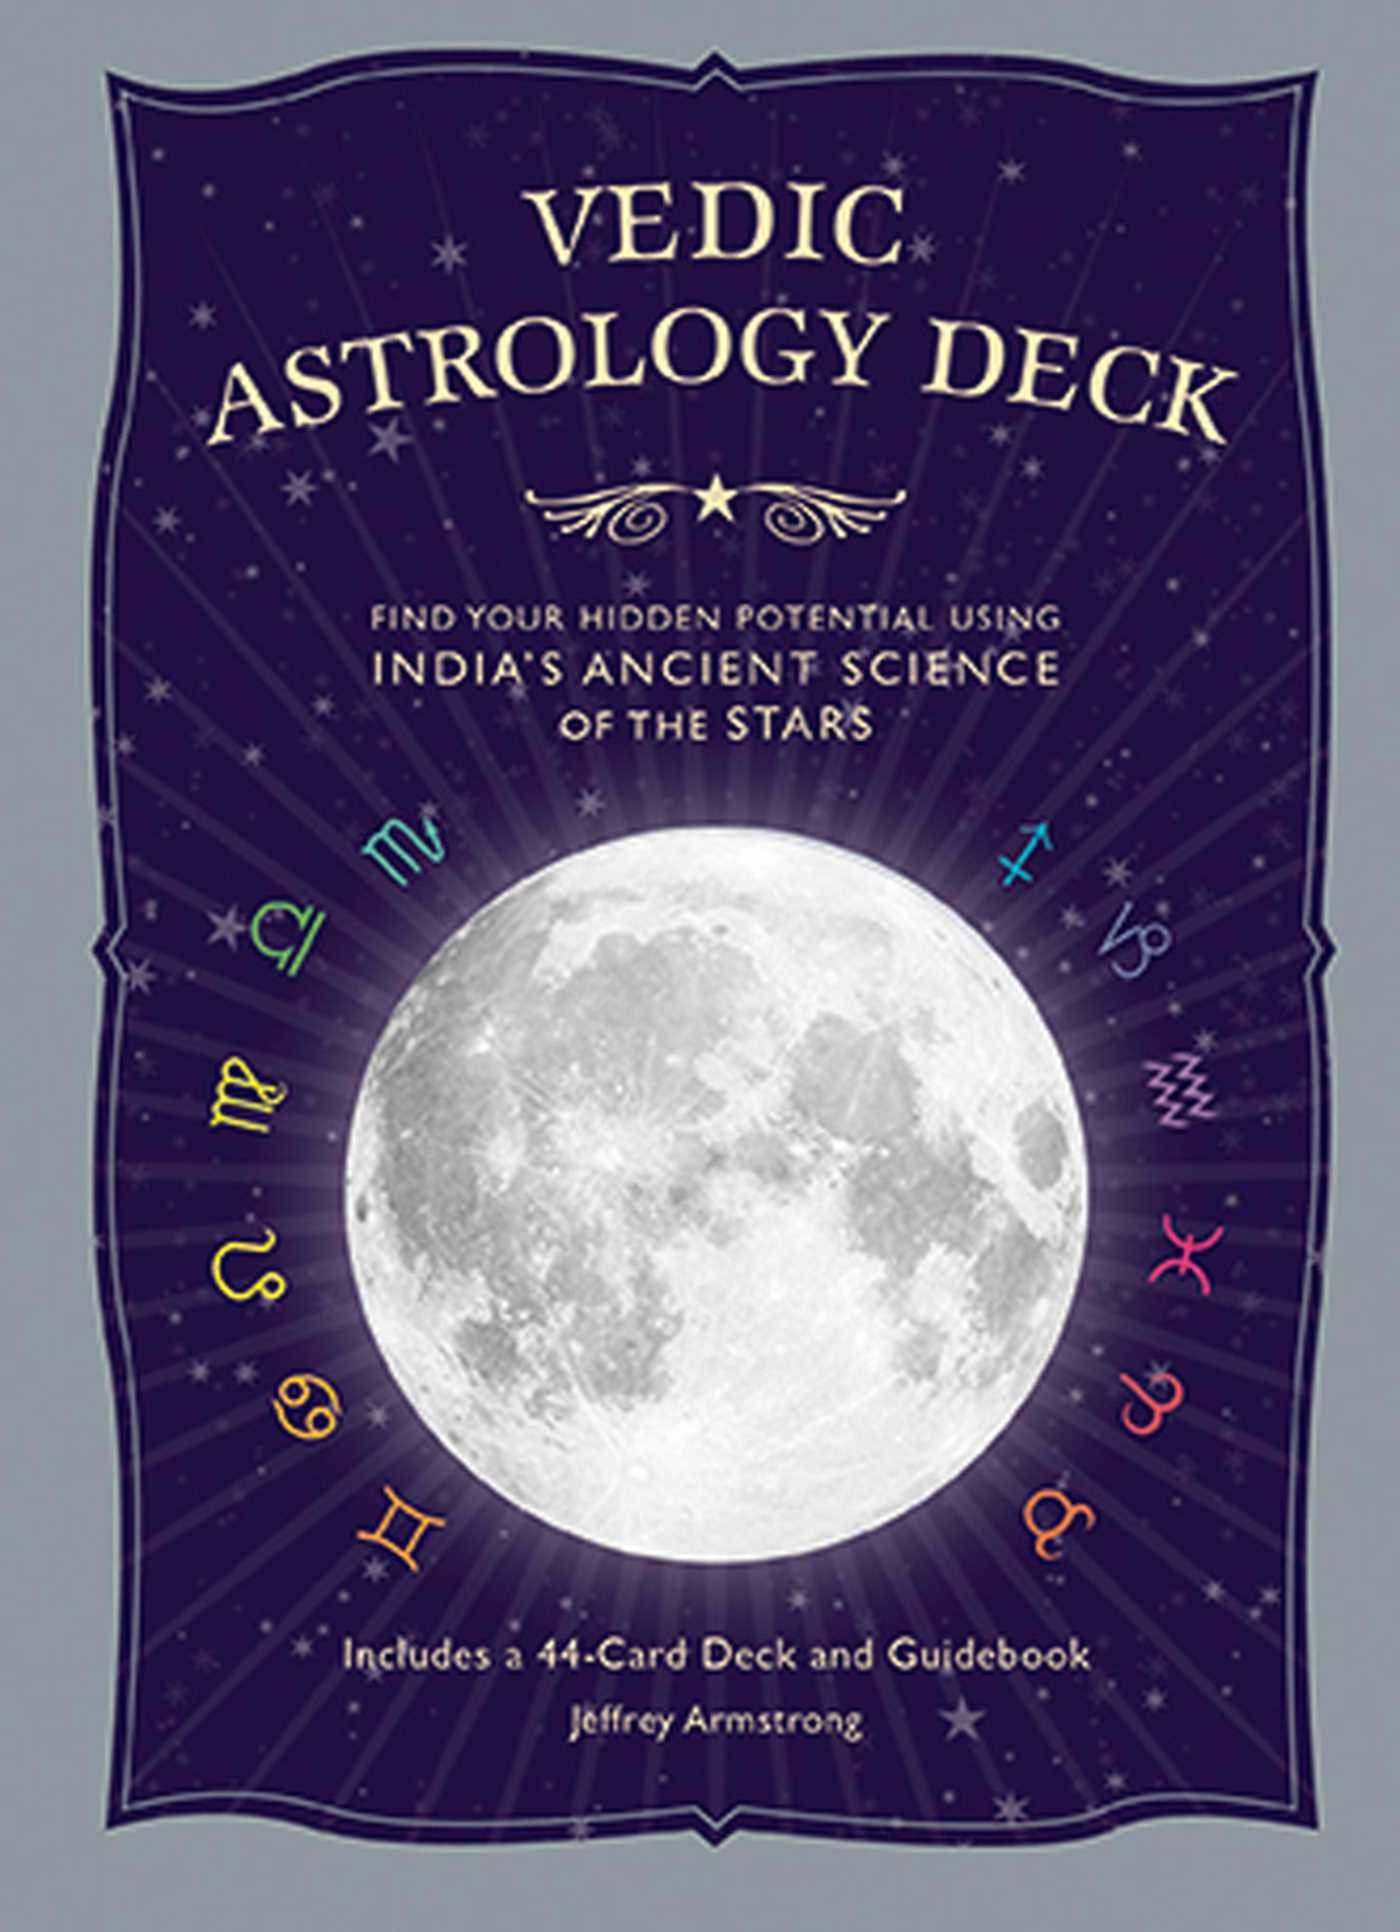 vedic astrology and science